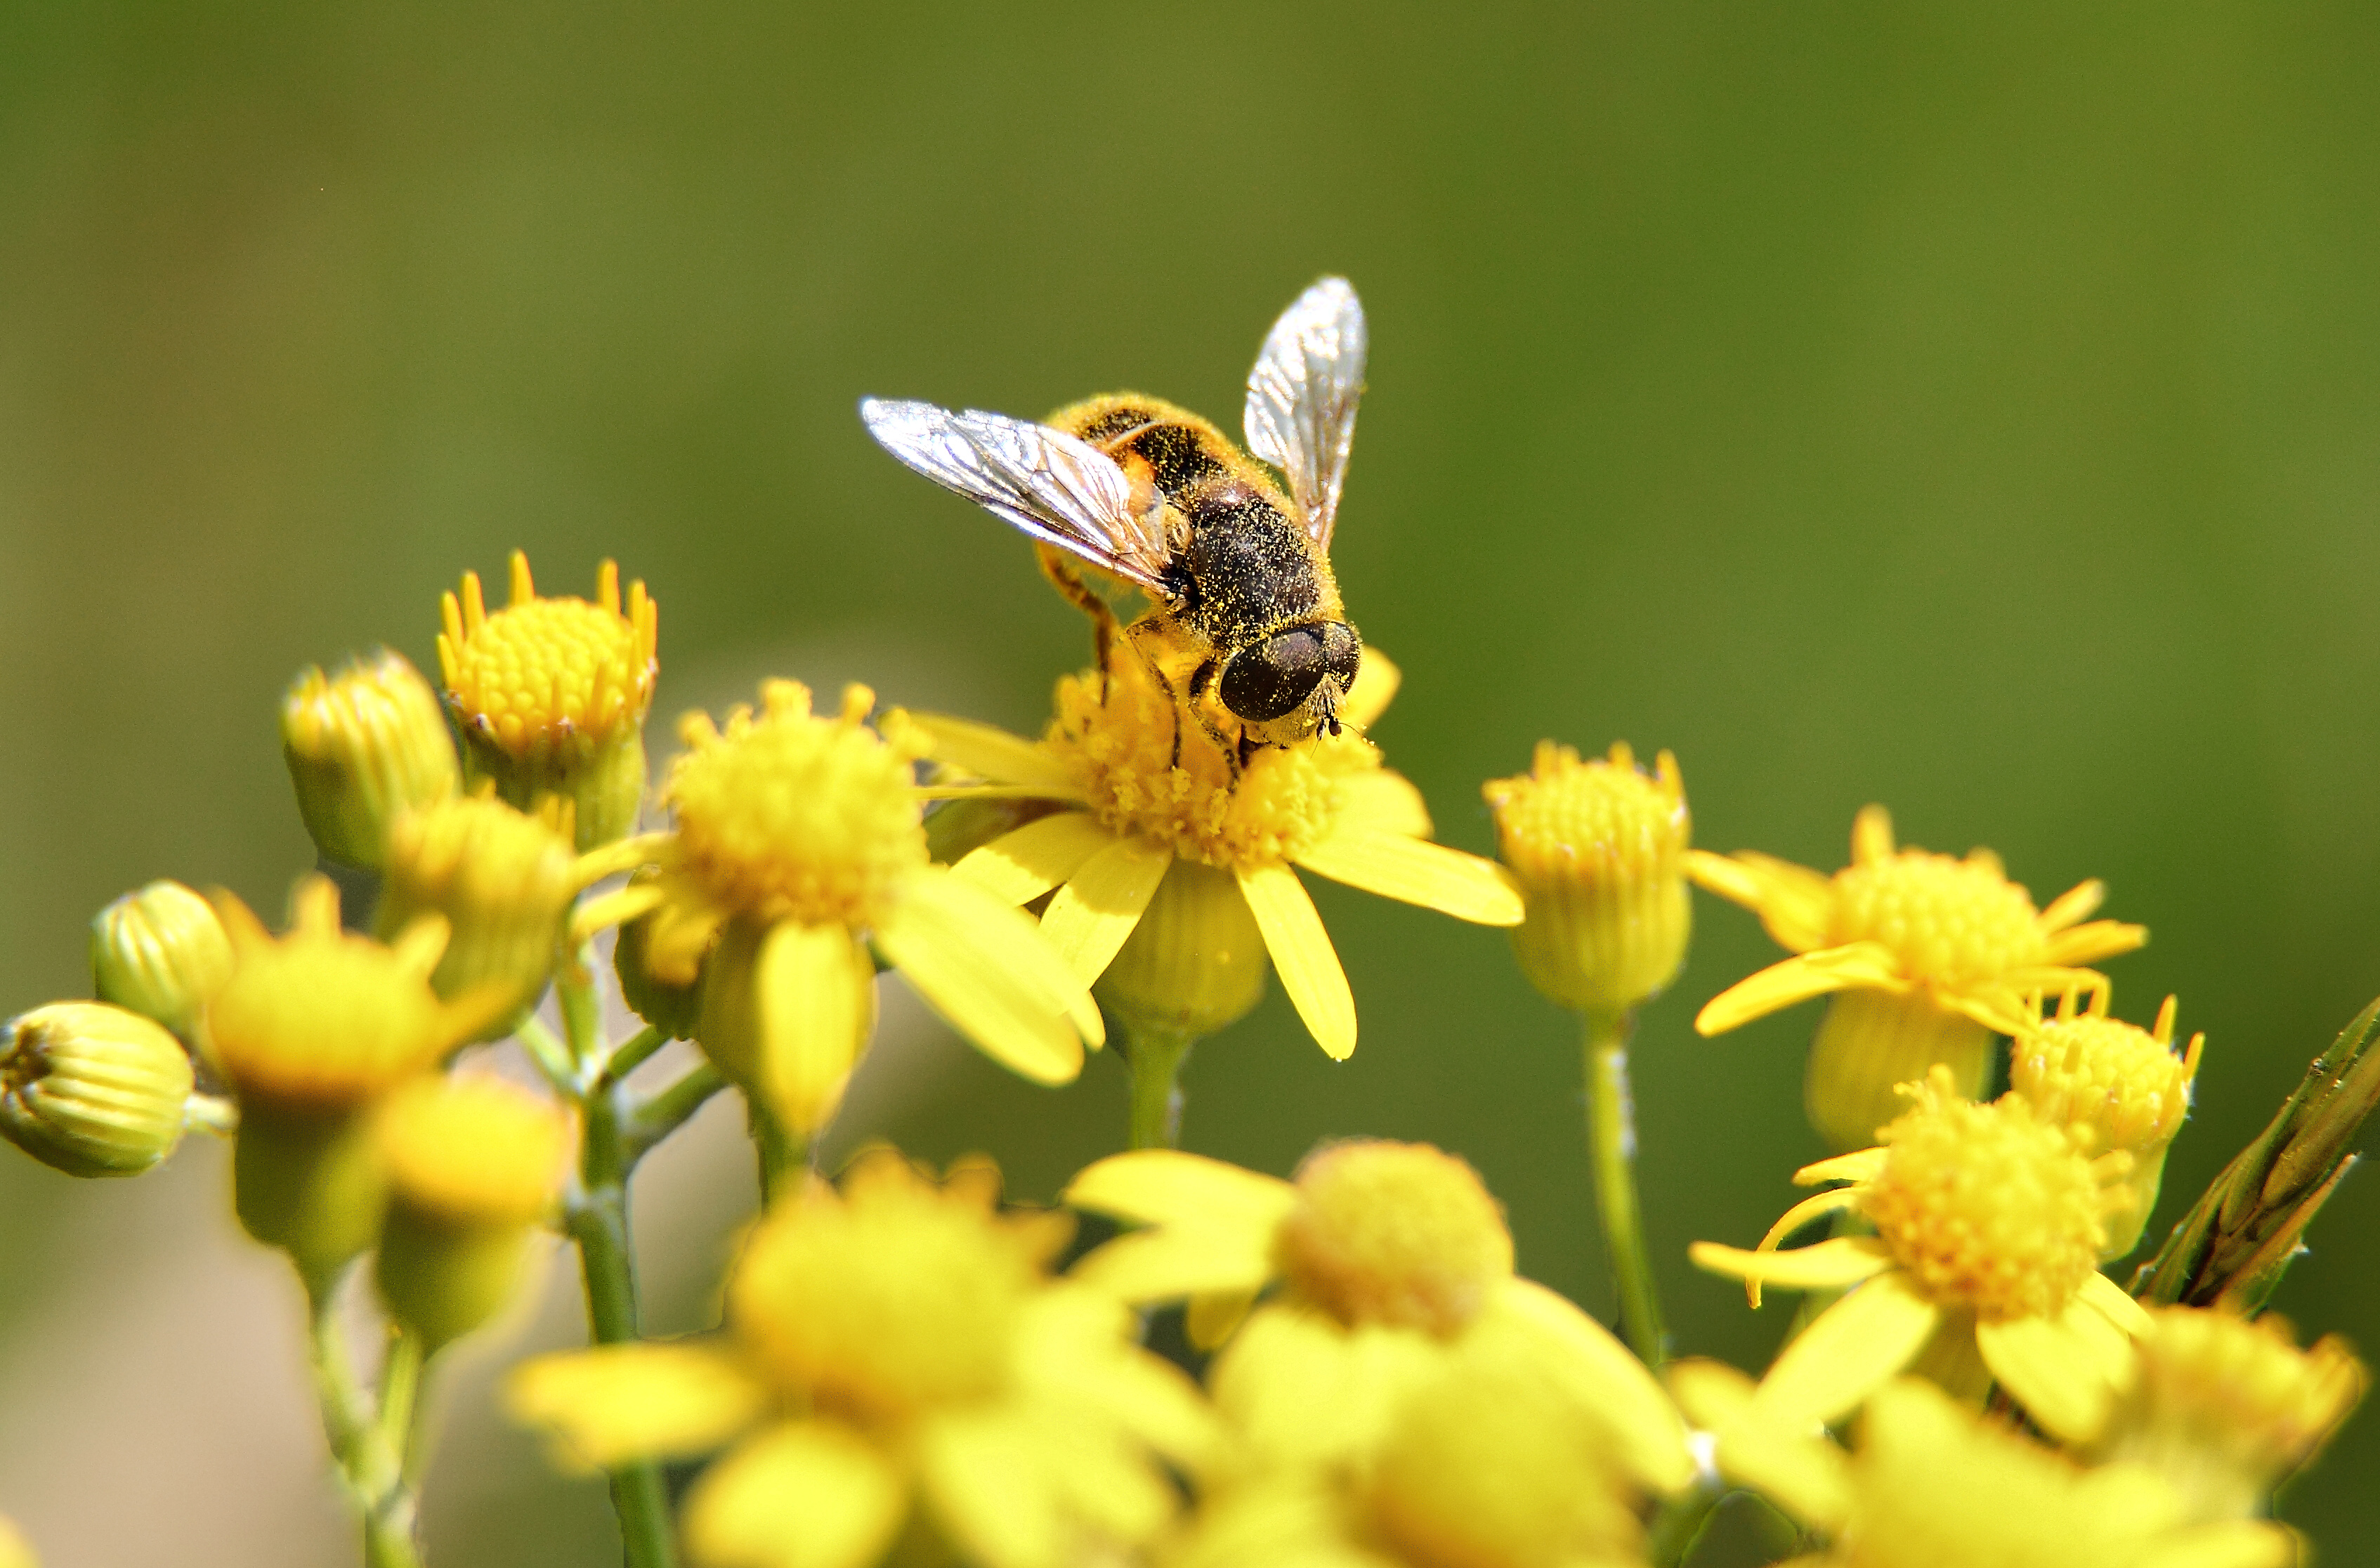 File:Bee-gathering pollen yellow-flower-macro.jpg